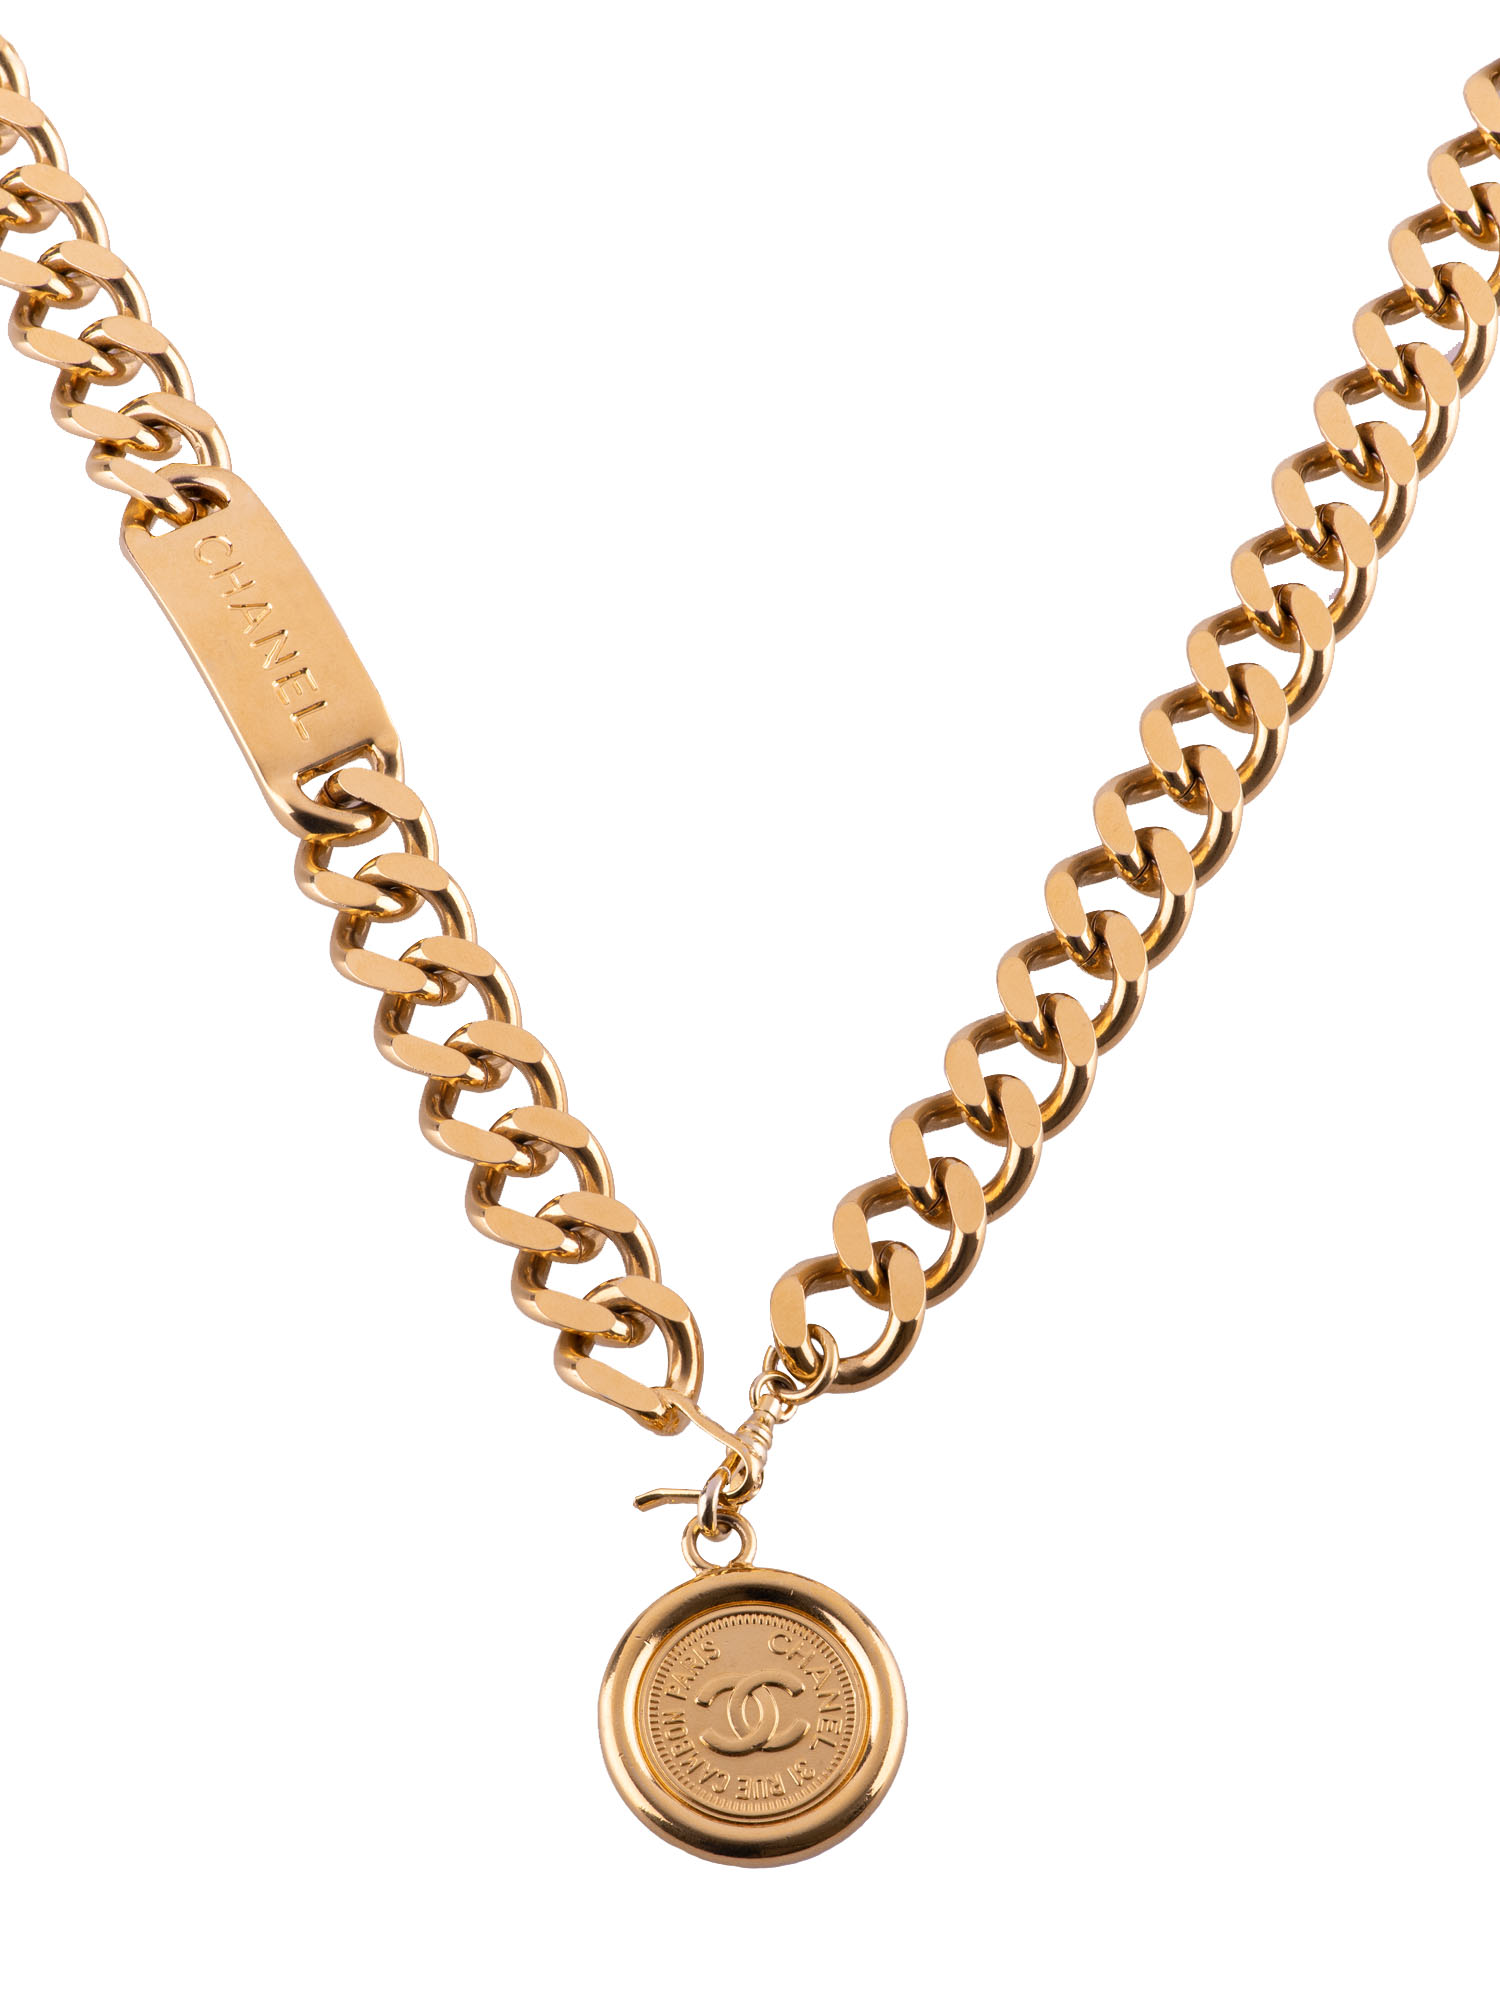 Chanel Name Plate Chain Belt NecklaceArtboard 2